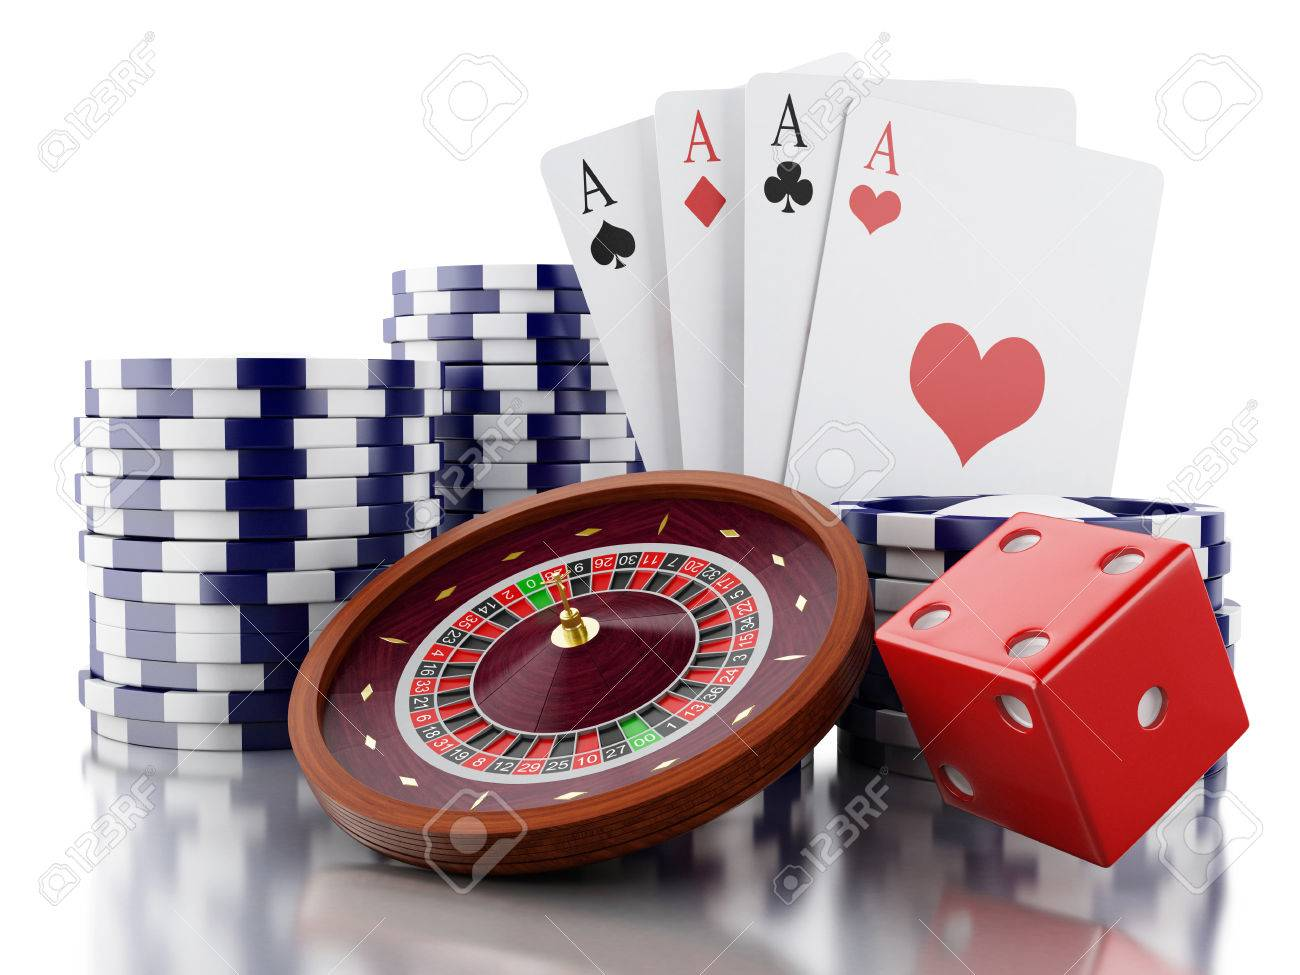 Gambling games with dice and cards next vip slots july 2016